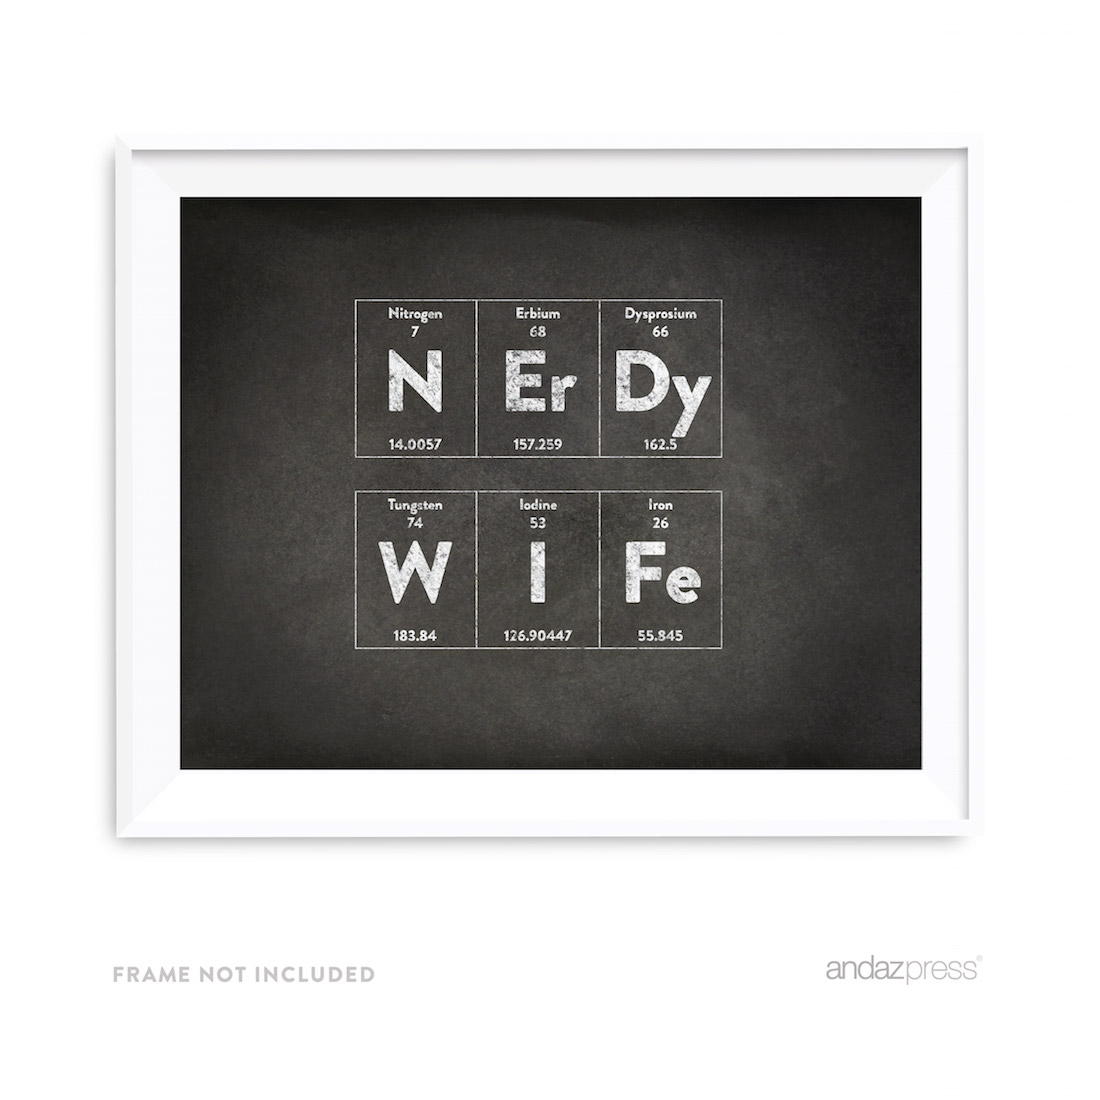 print print print print print print - 8 5 X 11 Periodic Table Of Elements